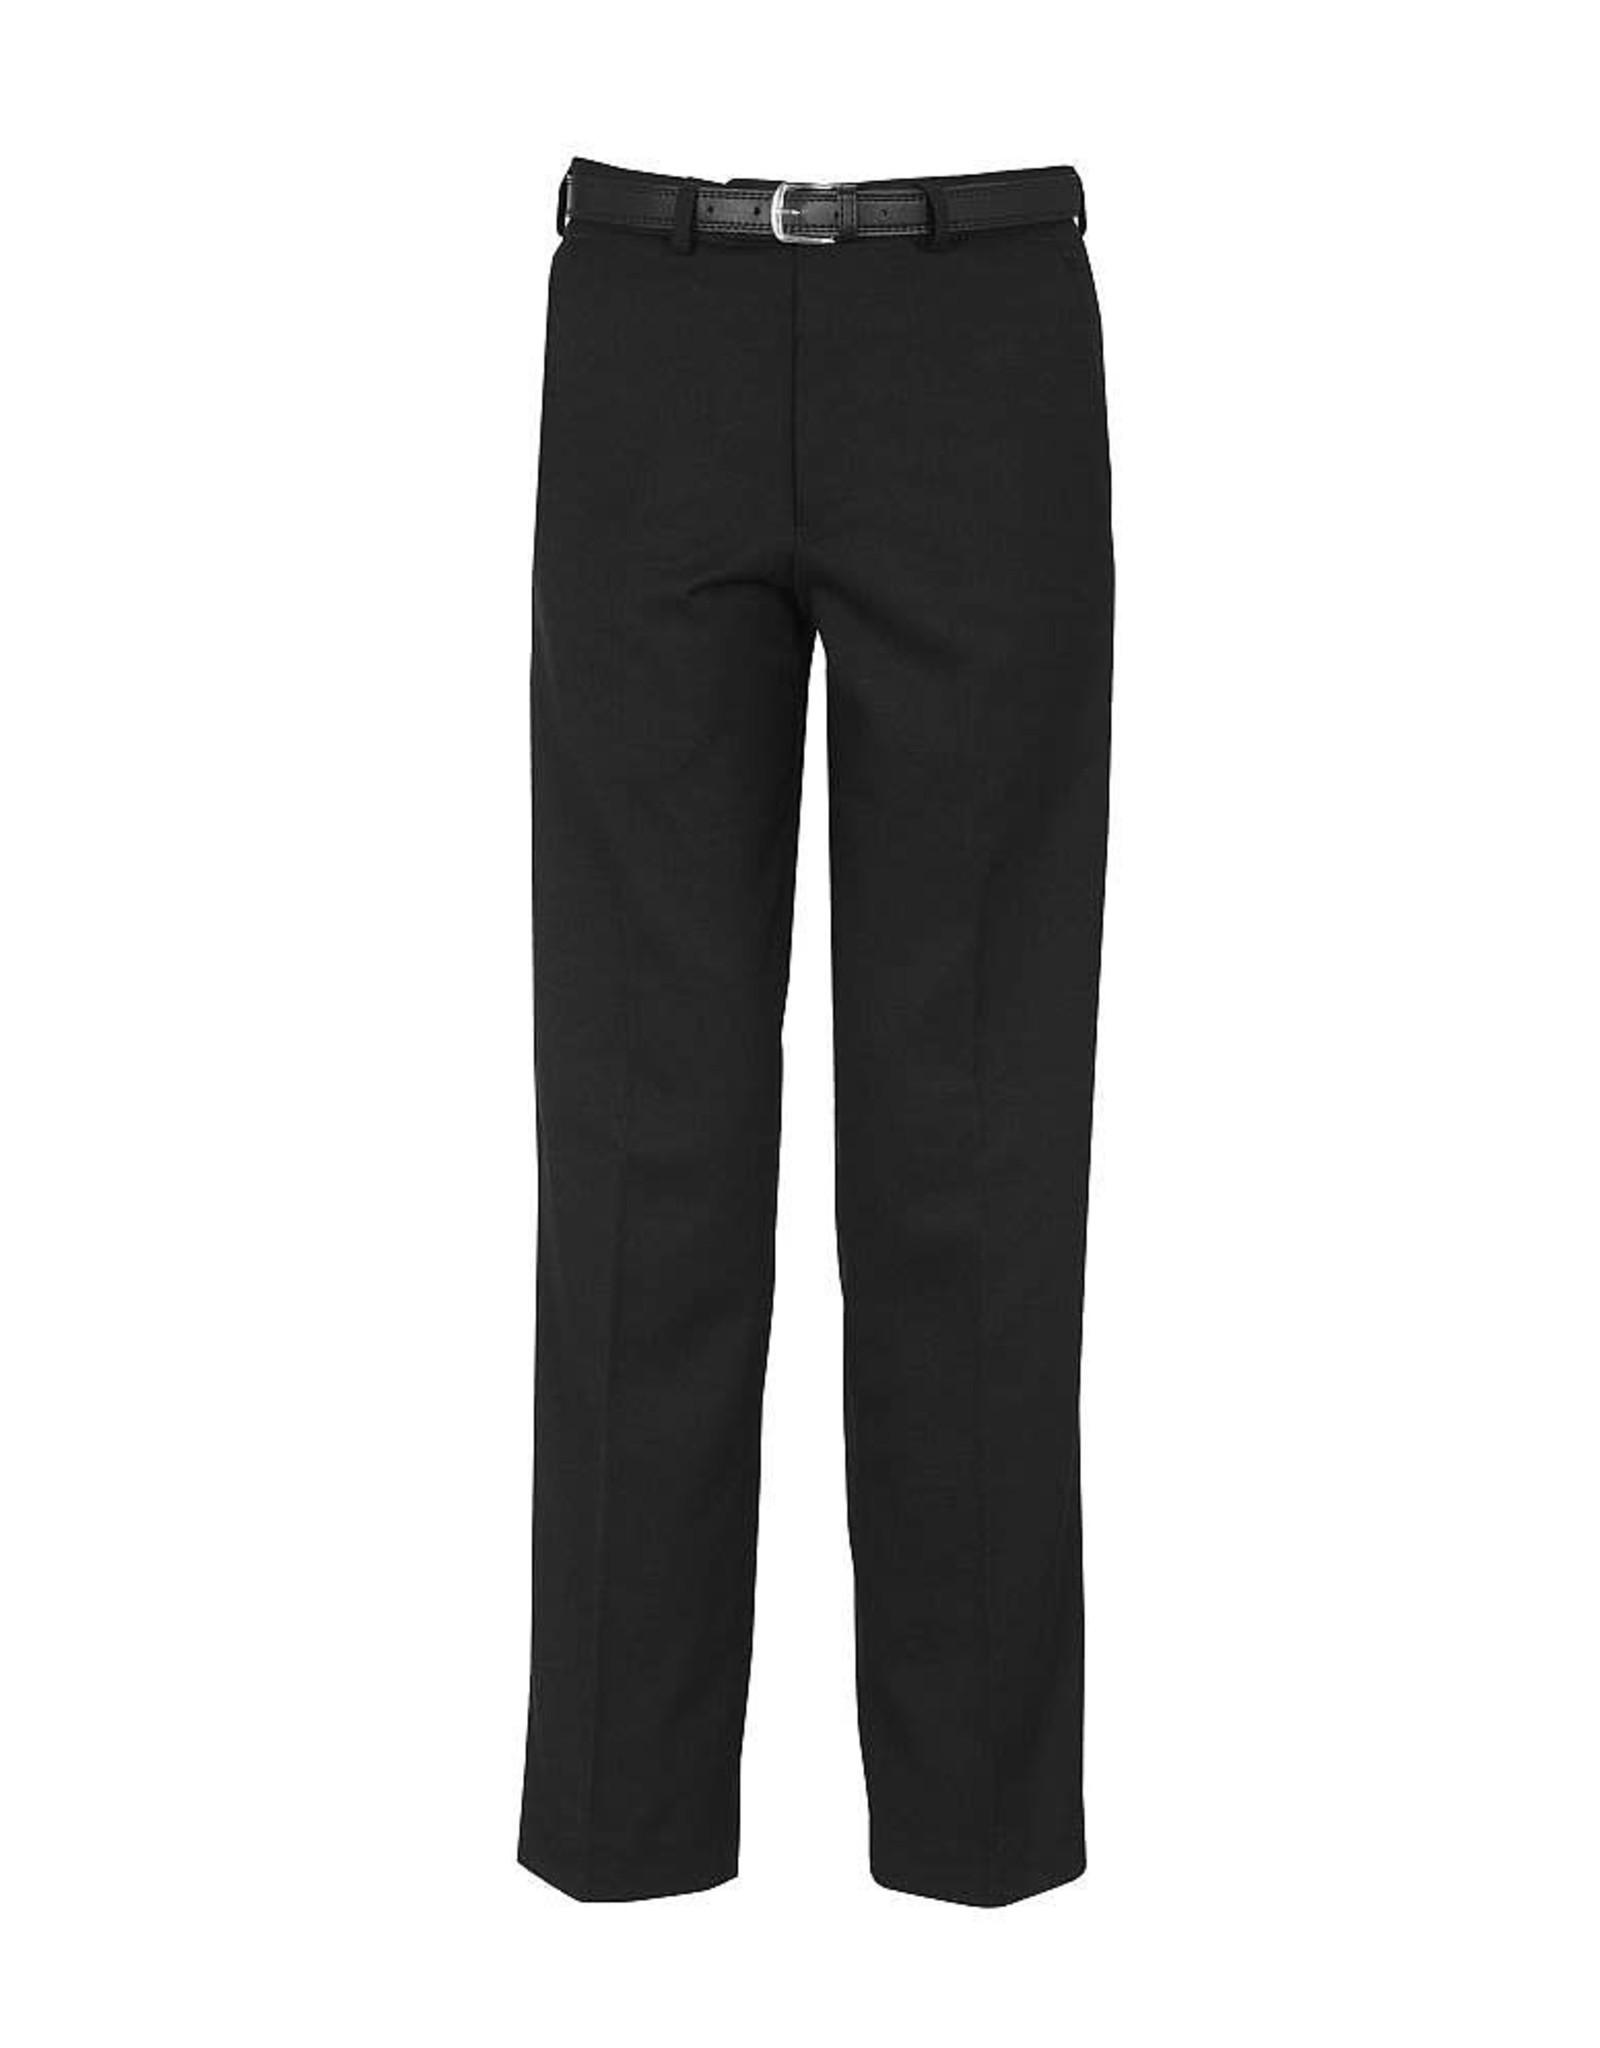 FALMOUTH Boys Falmouth Flat Front Trousers Adult Size - Nicholas Chamberlaine School